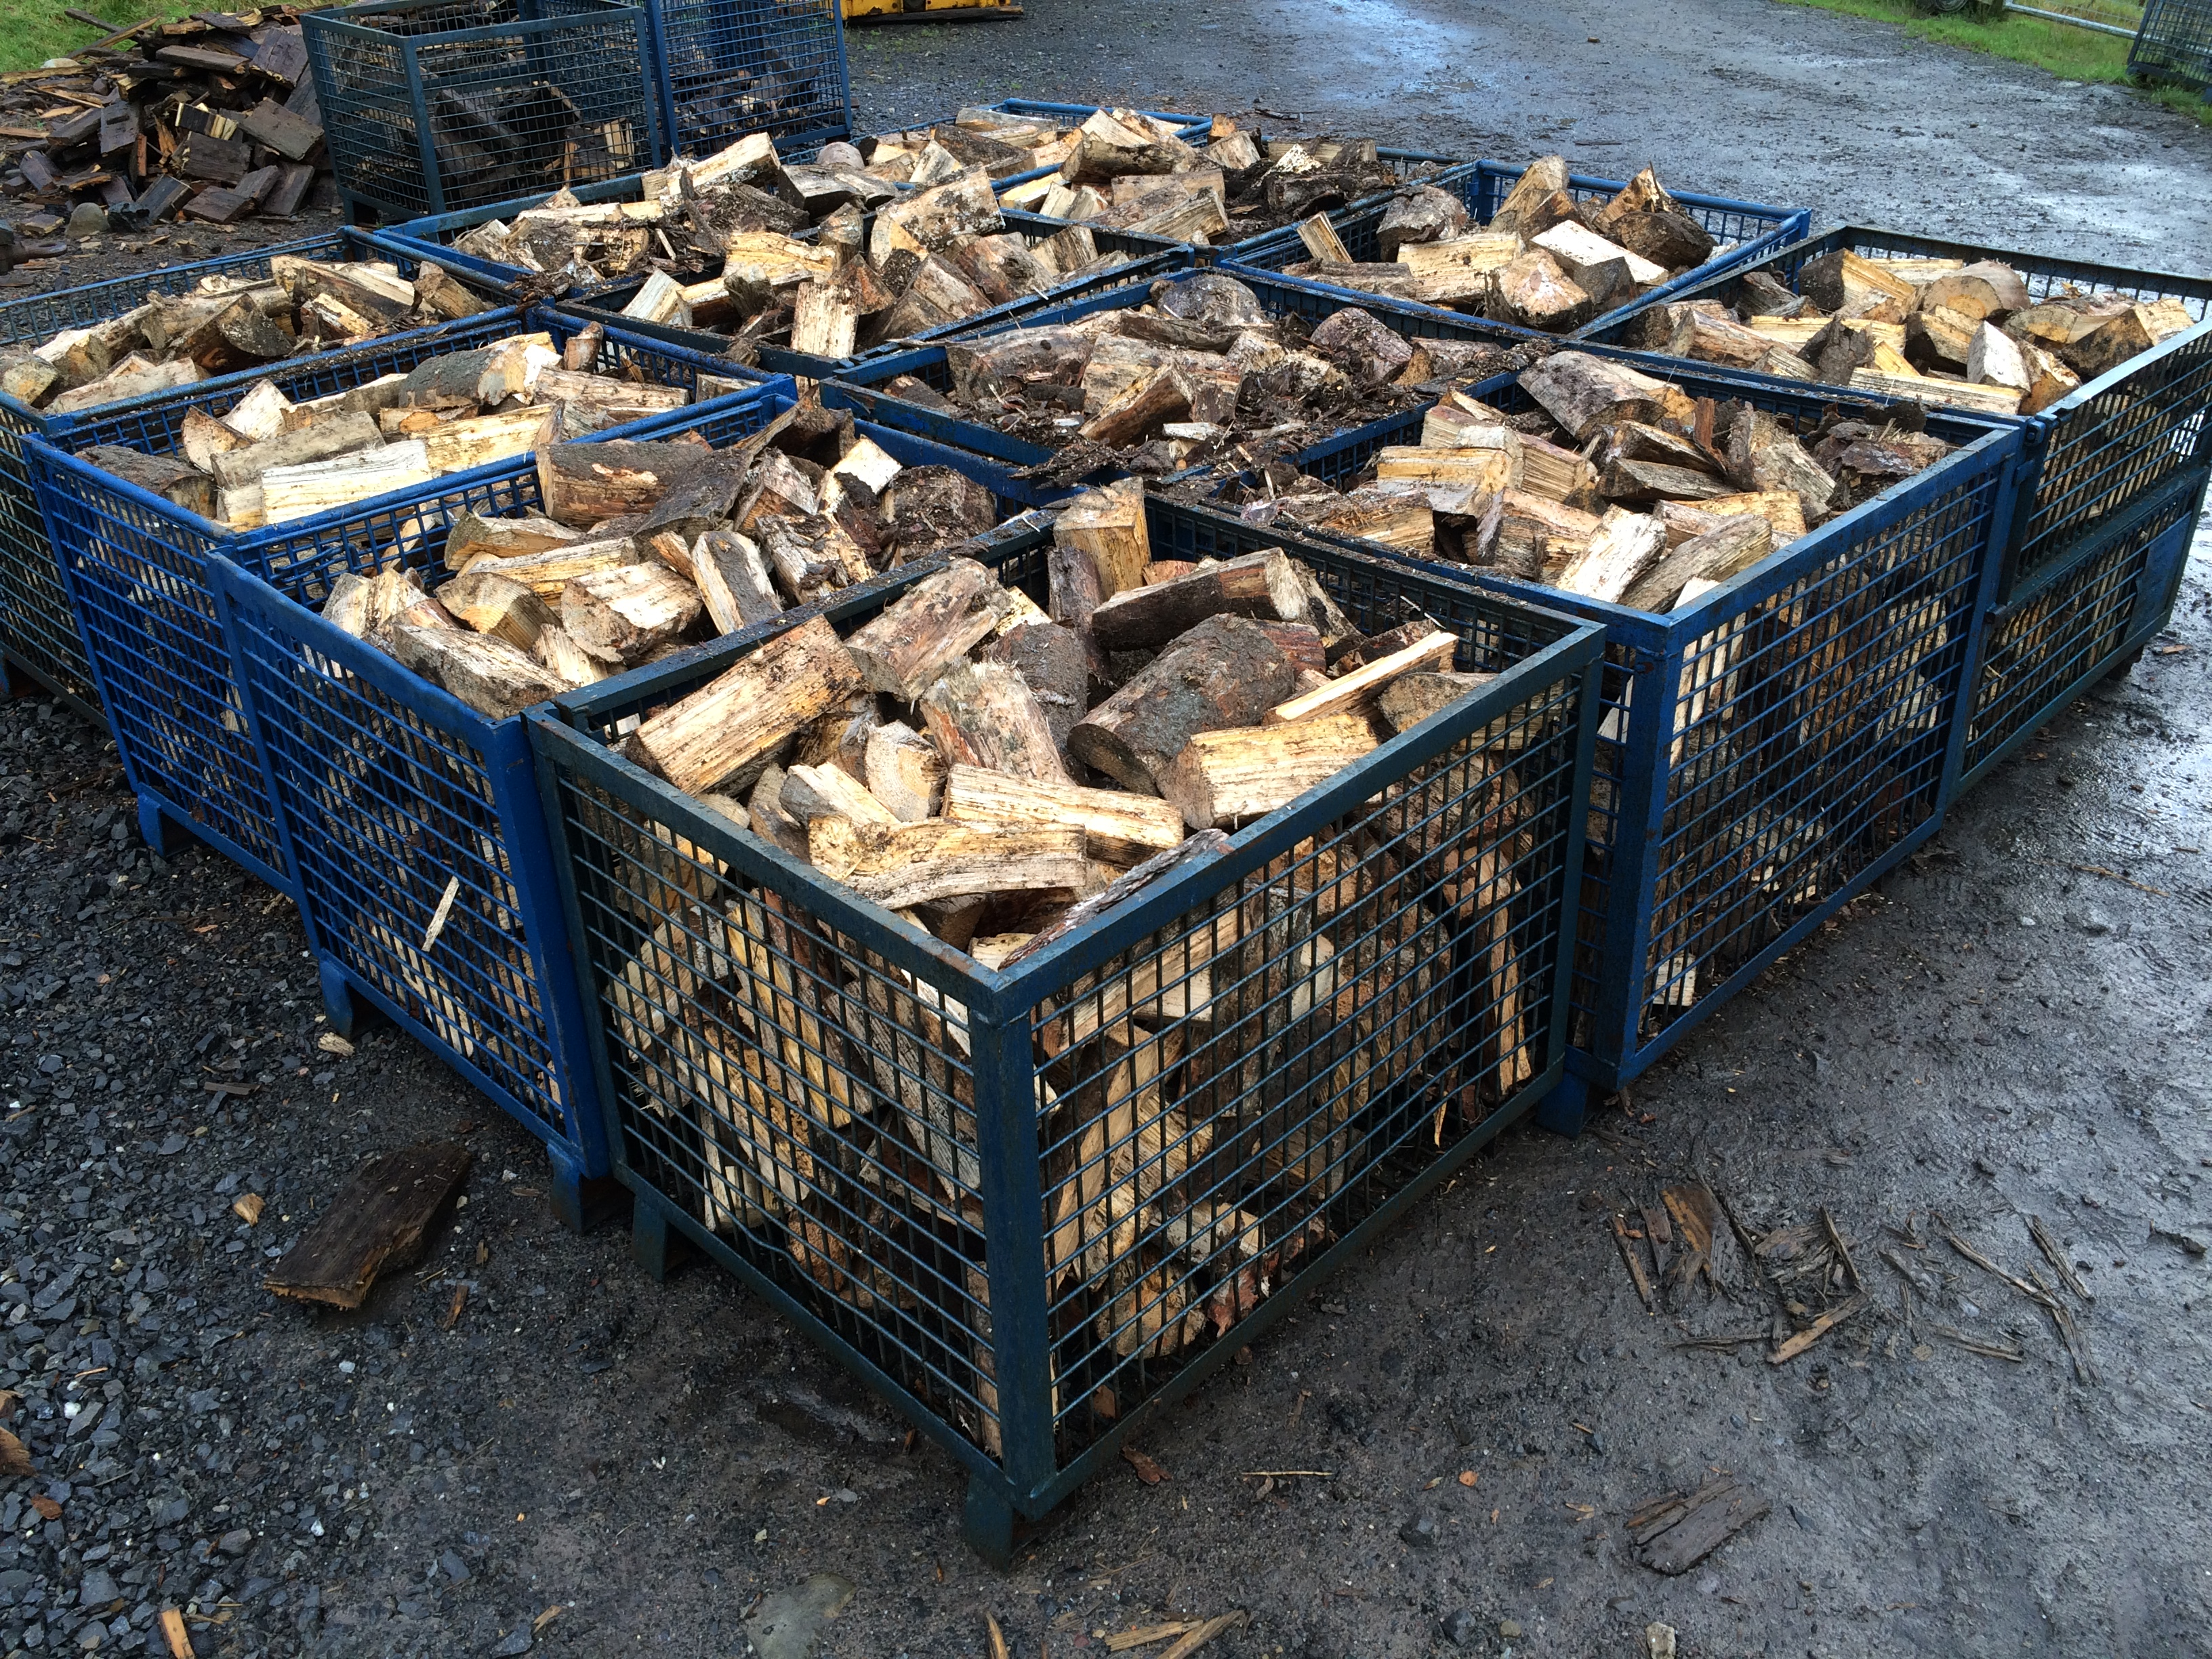 Logs in baskets ready for the kilns.